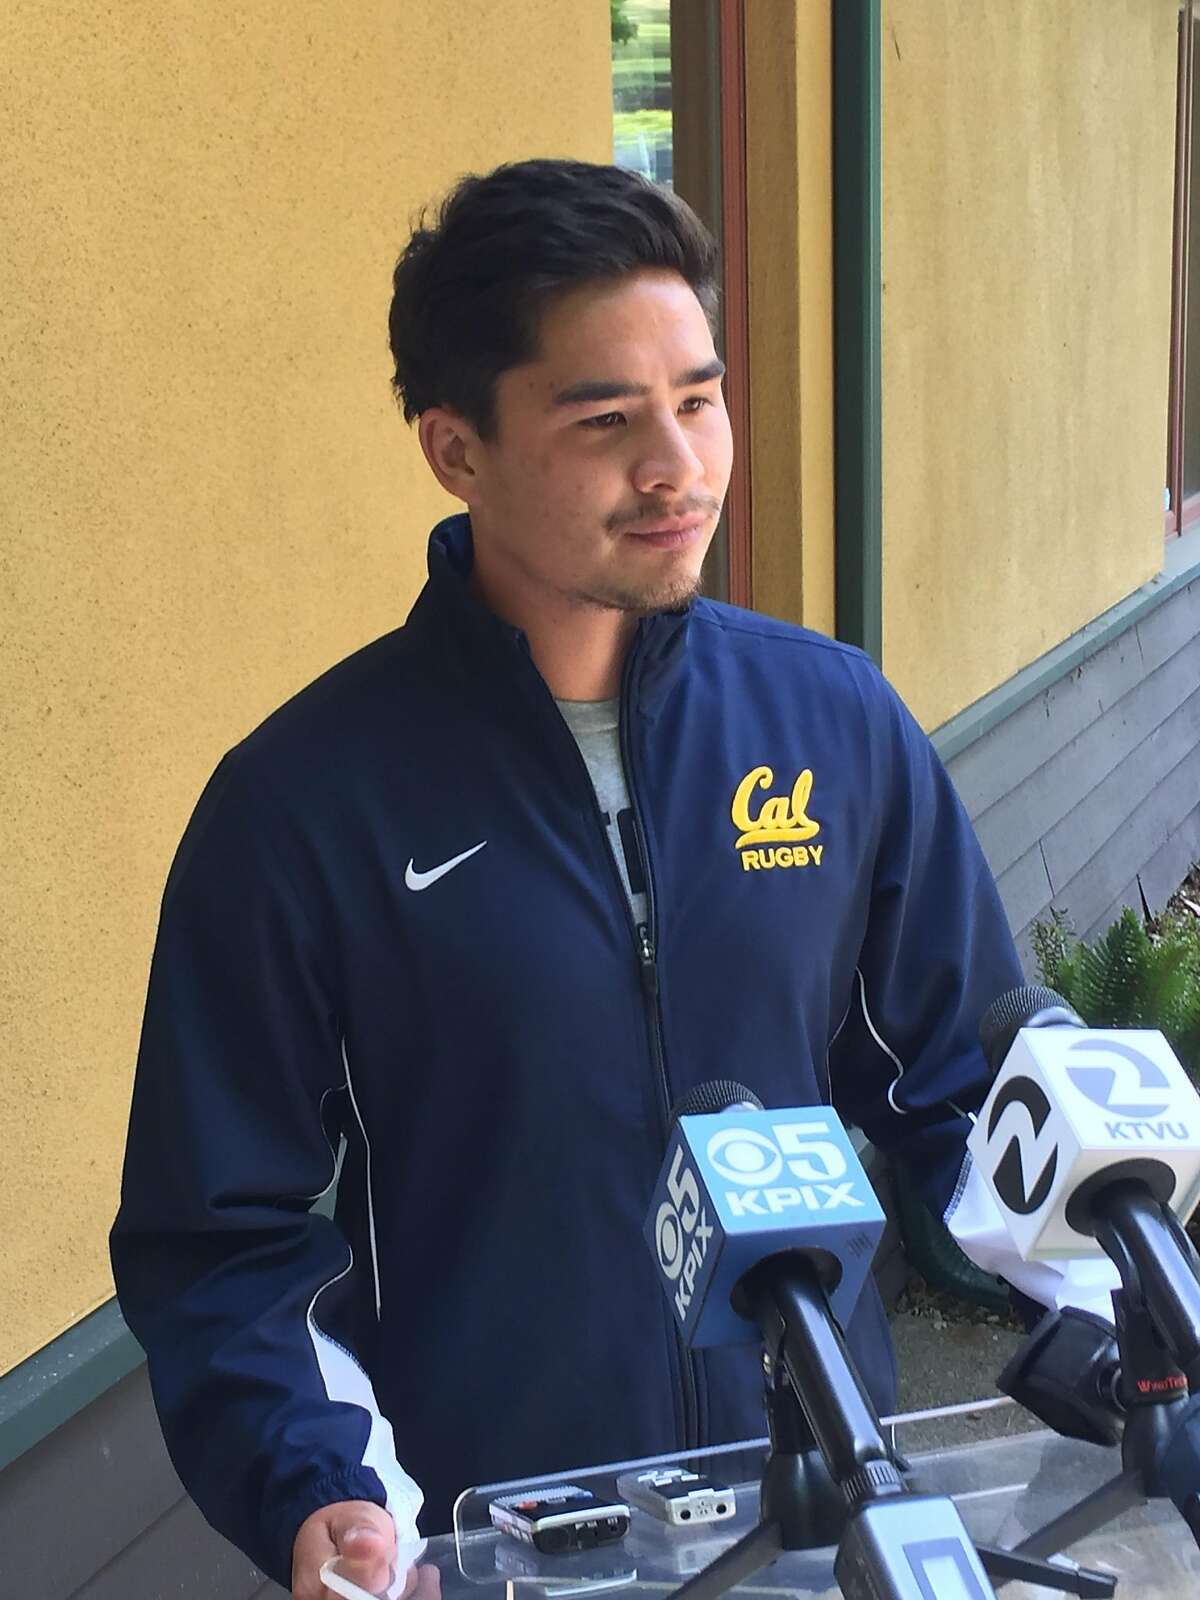 Cal rugby captain Russell Webb discusses the injury that left teammate Robert Paylor paralyzed in Saturday's national championship match in Santa Clara.